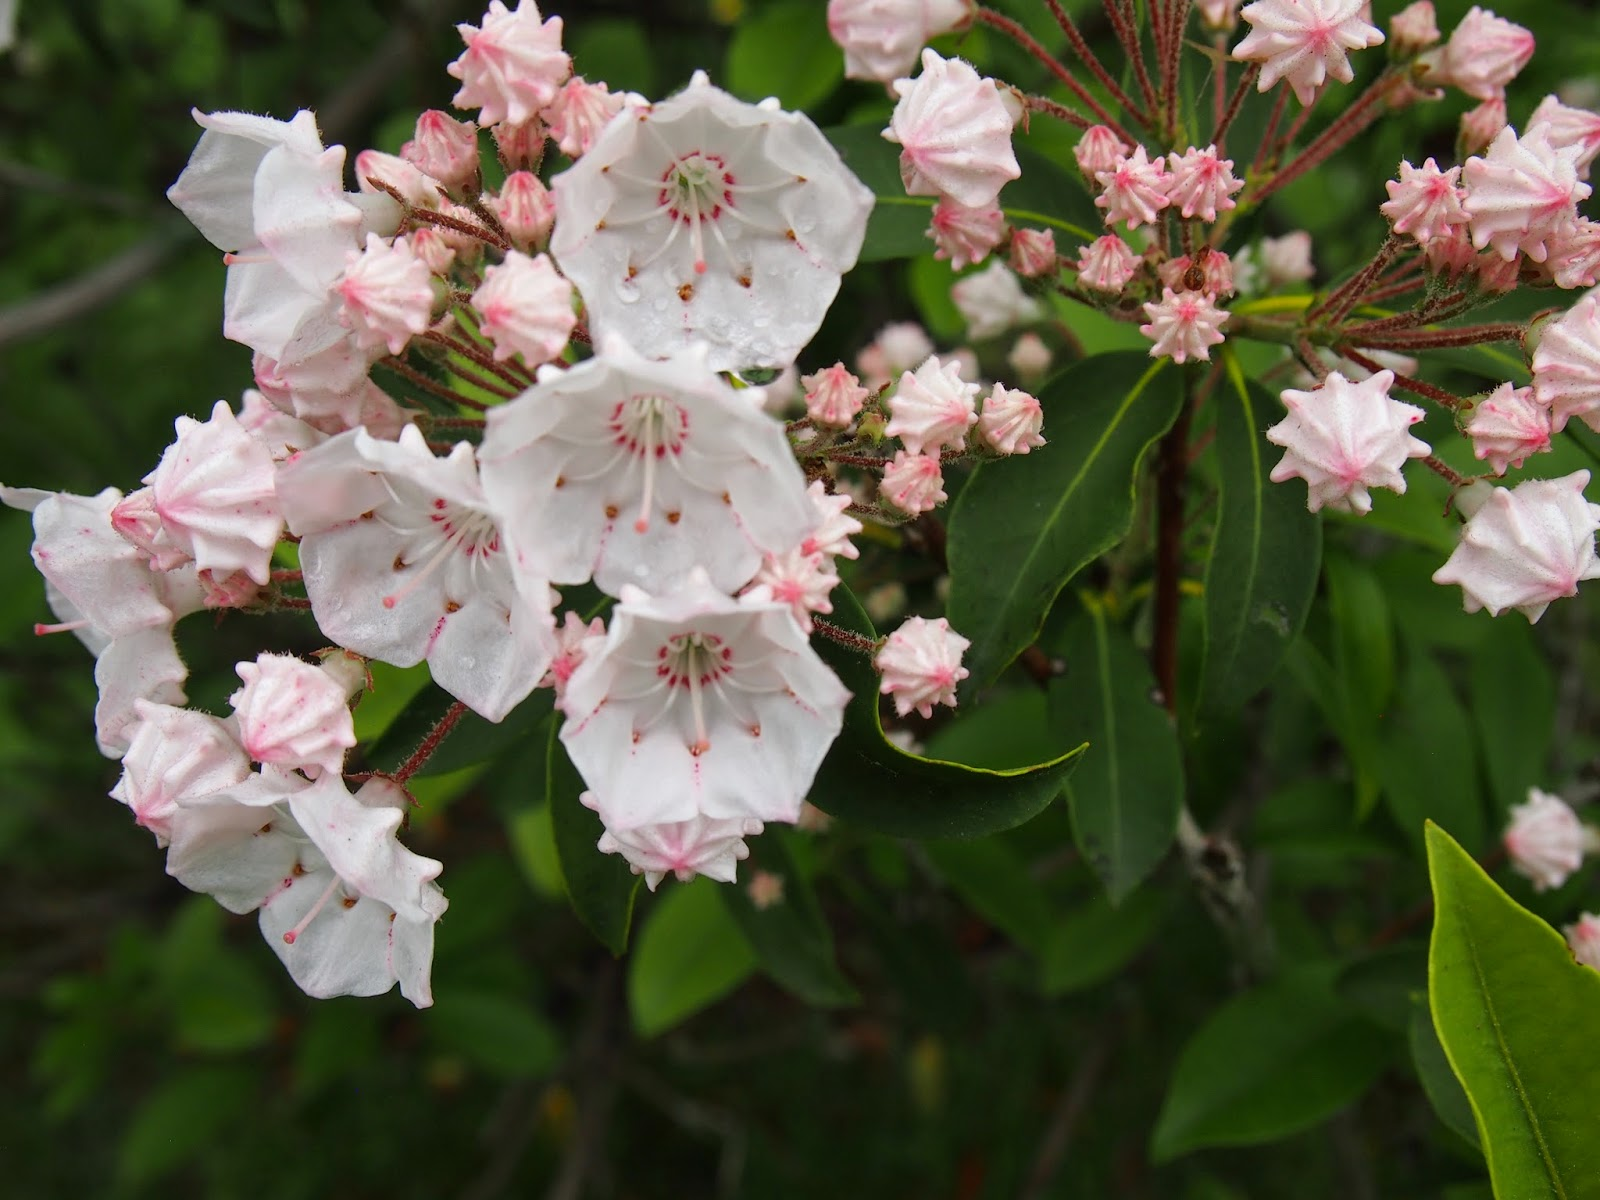 mountain laurels - the Connecticut state flower